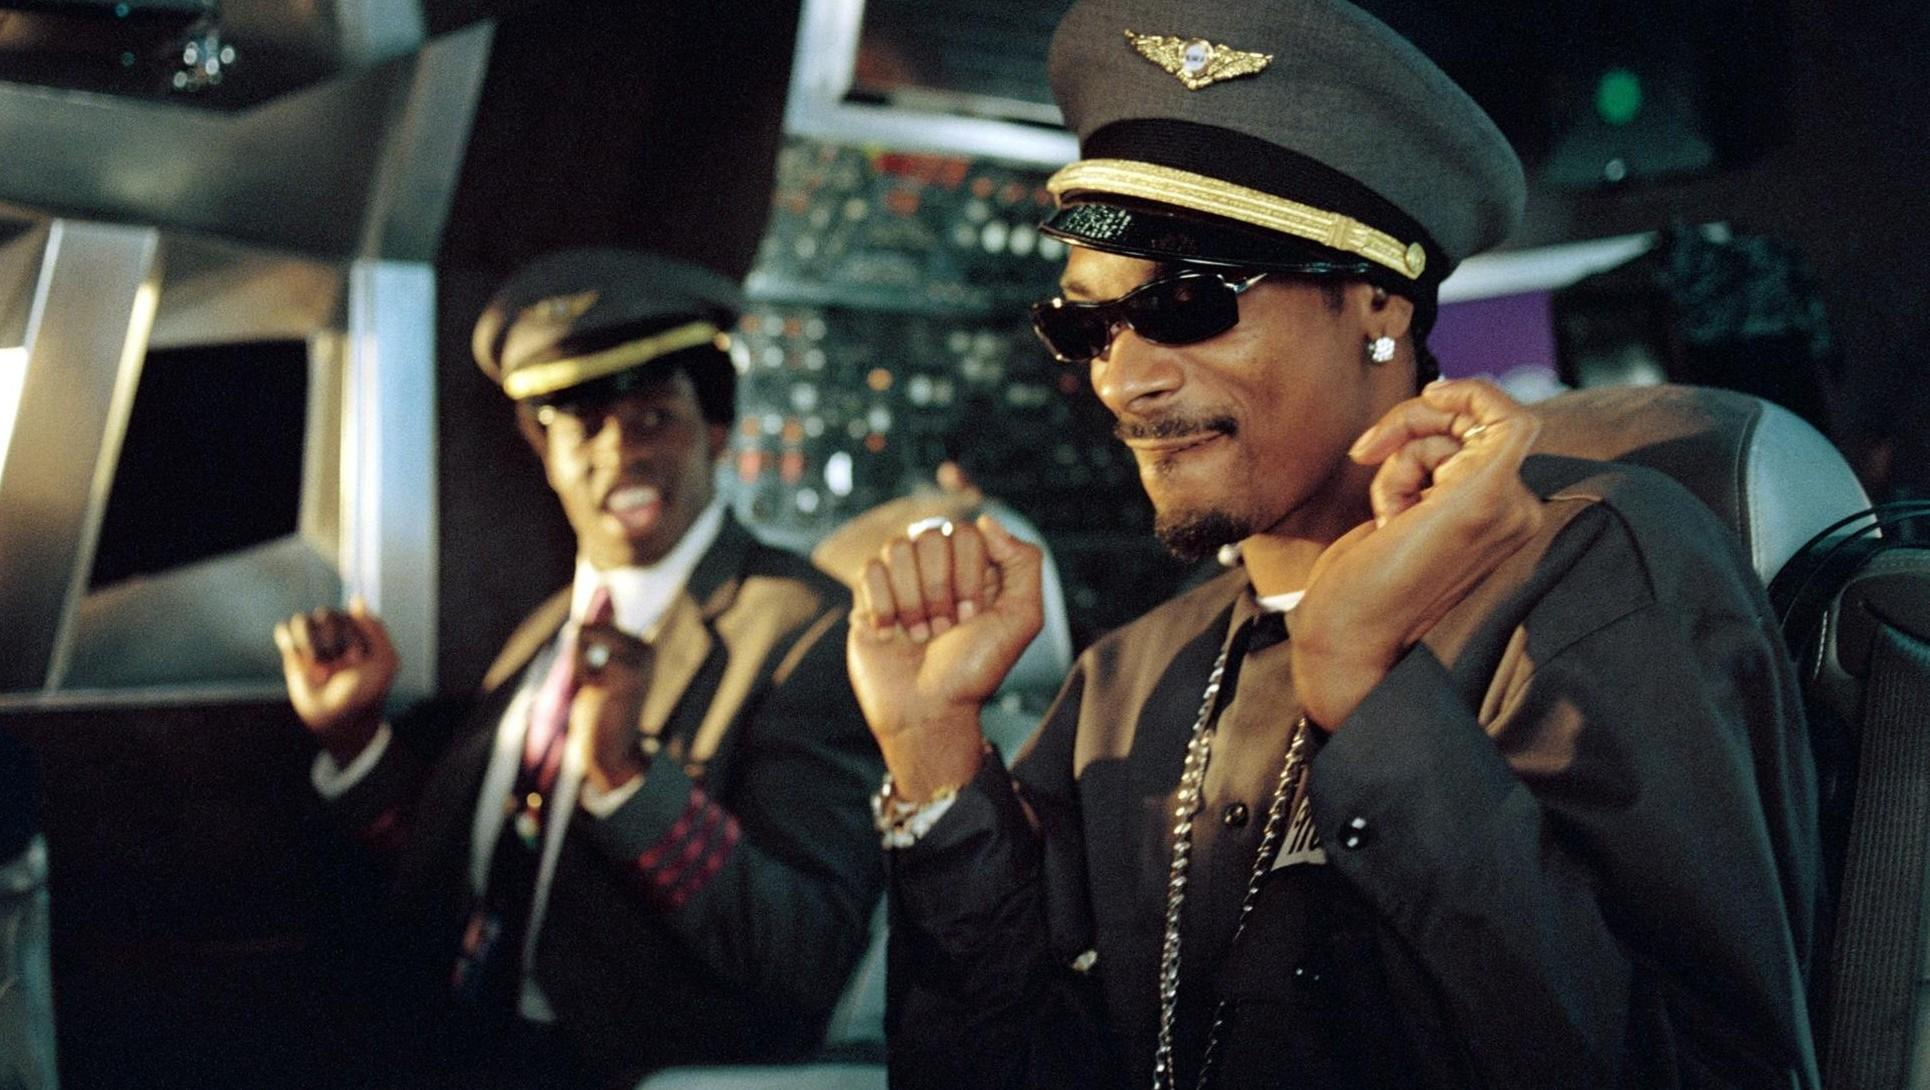 What's the name of this 2004 airplane comedy film starring Snoop Doggy Dogg?